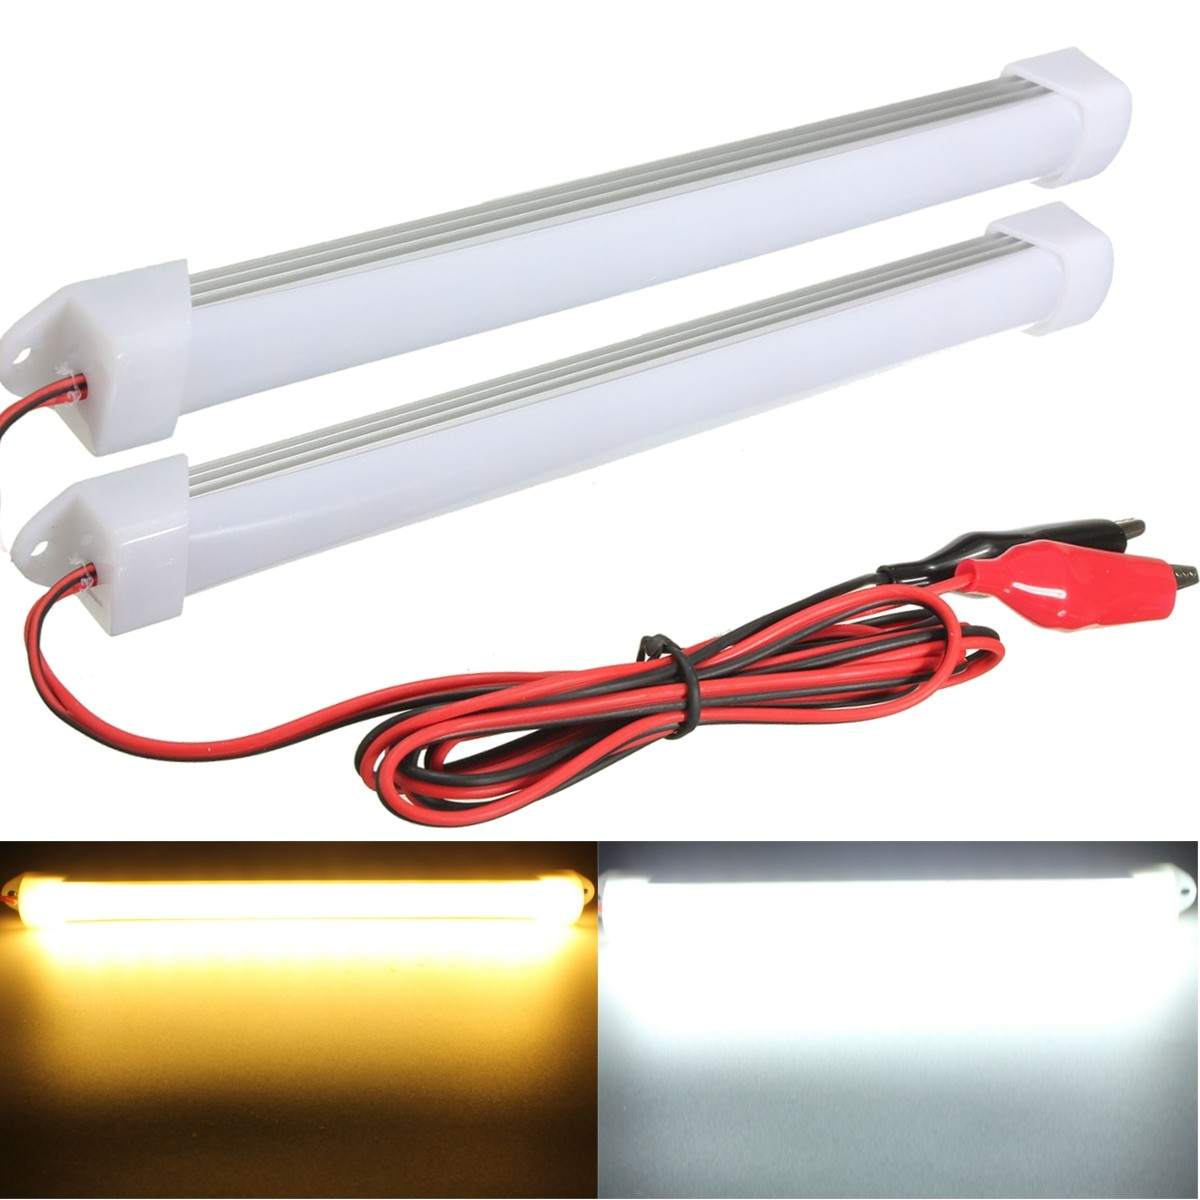 2015 new 2pcs 12v led car interior light bar tube strip lamp van boat caravan motorhome us465. Black Bedroom Furniture Sets. Home Design Ideas